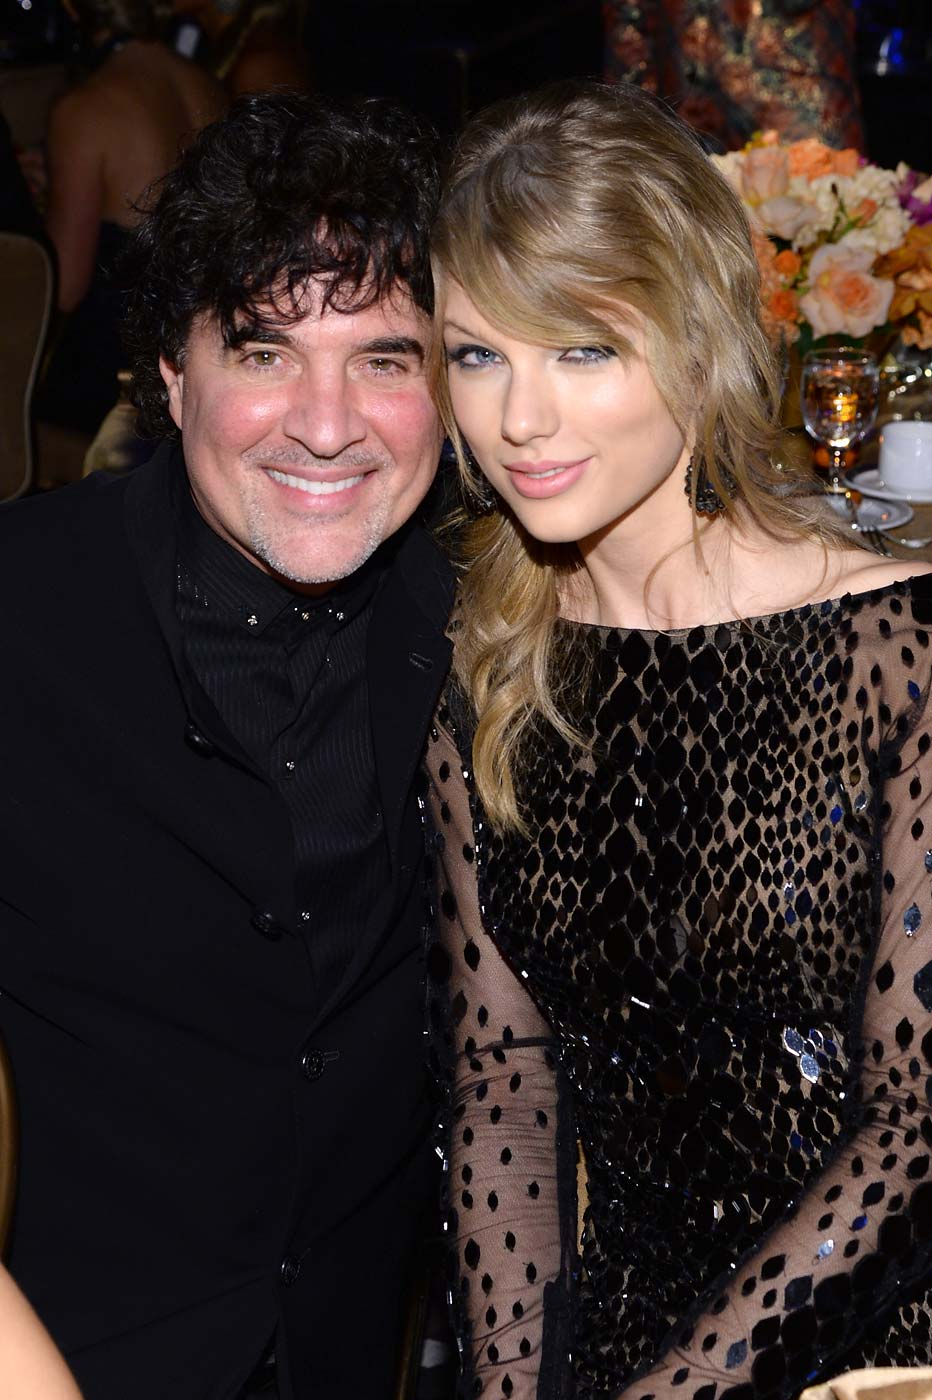 Scott Borchetta and Taylor Swift attend the 56th annual Grammy Awards Pre-Grammy Gala at The Beverly Hilton on January 25, 2014 in Beverly Hills, California.